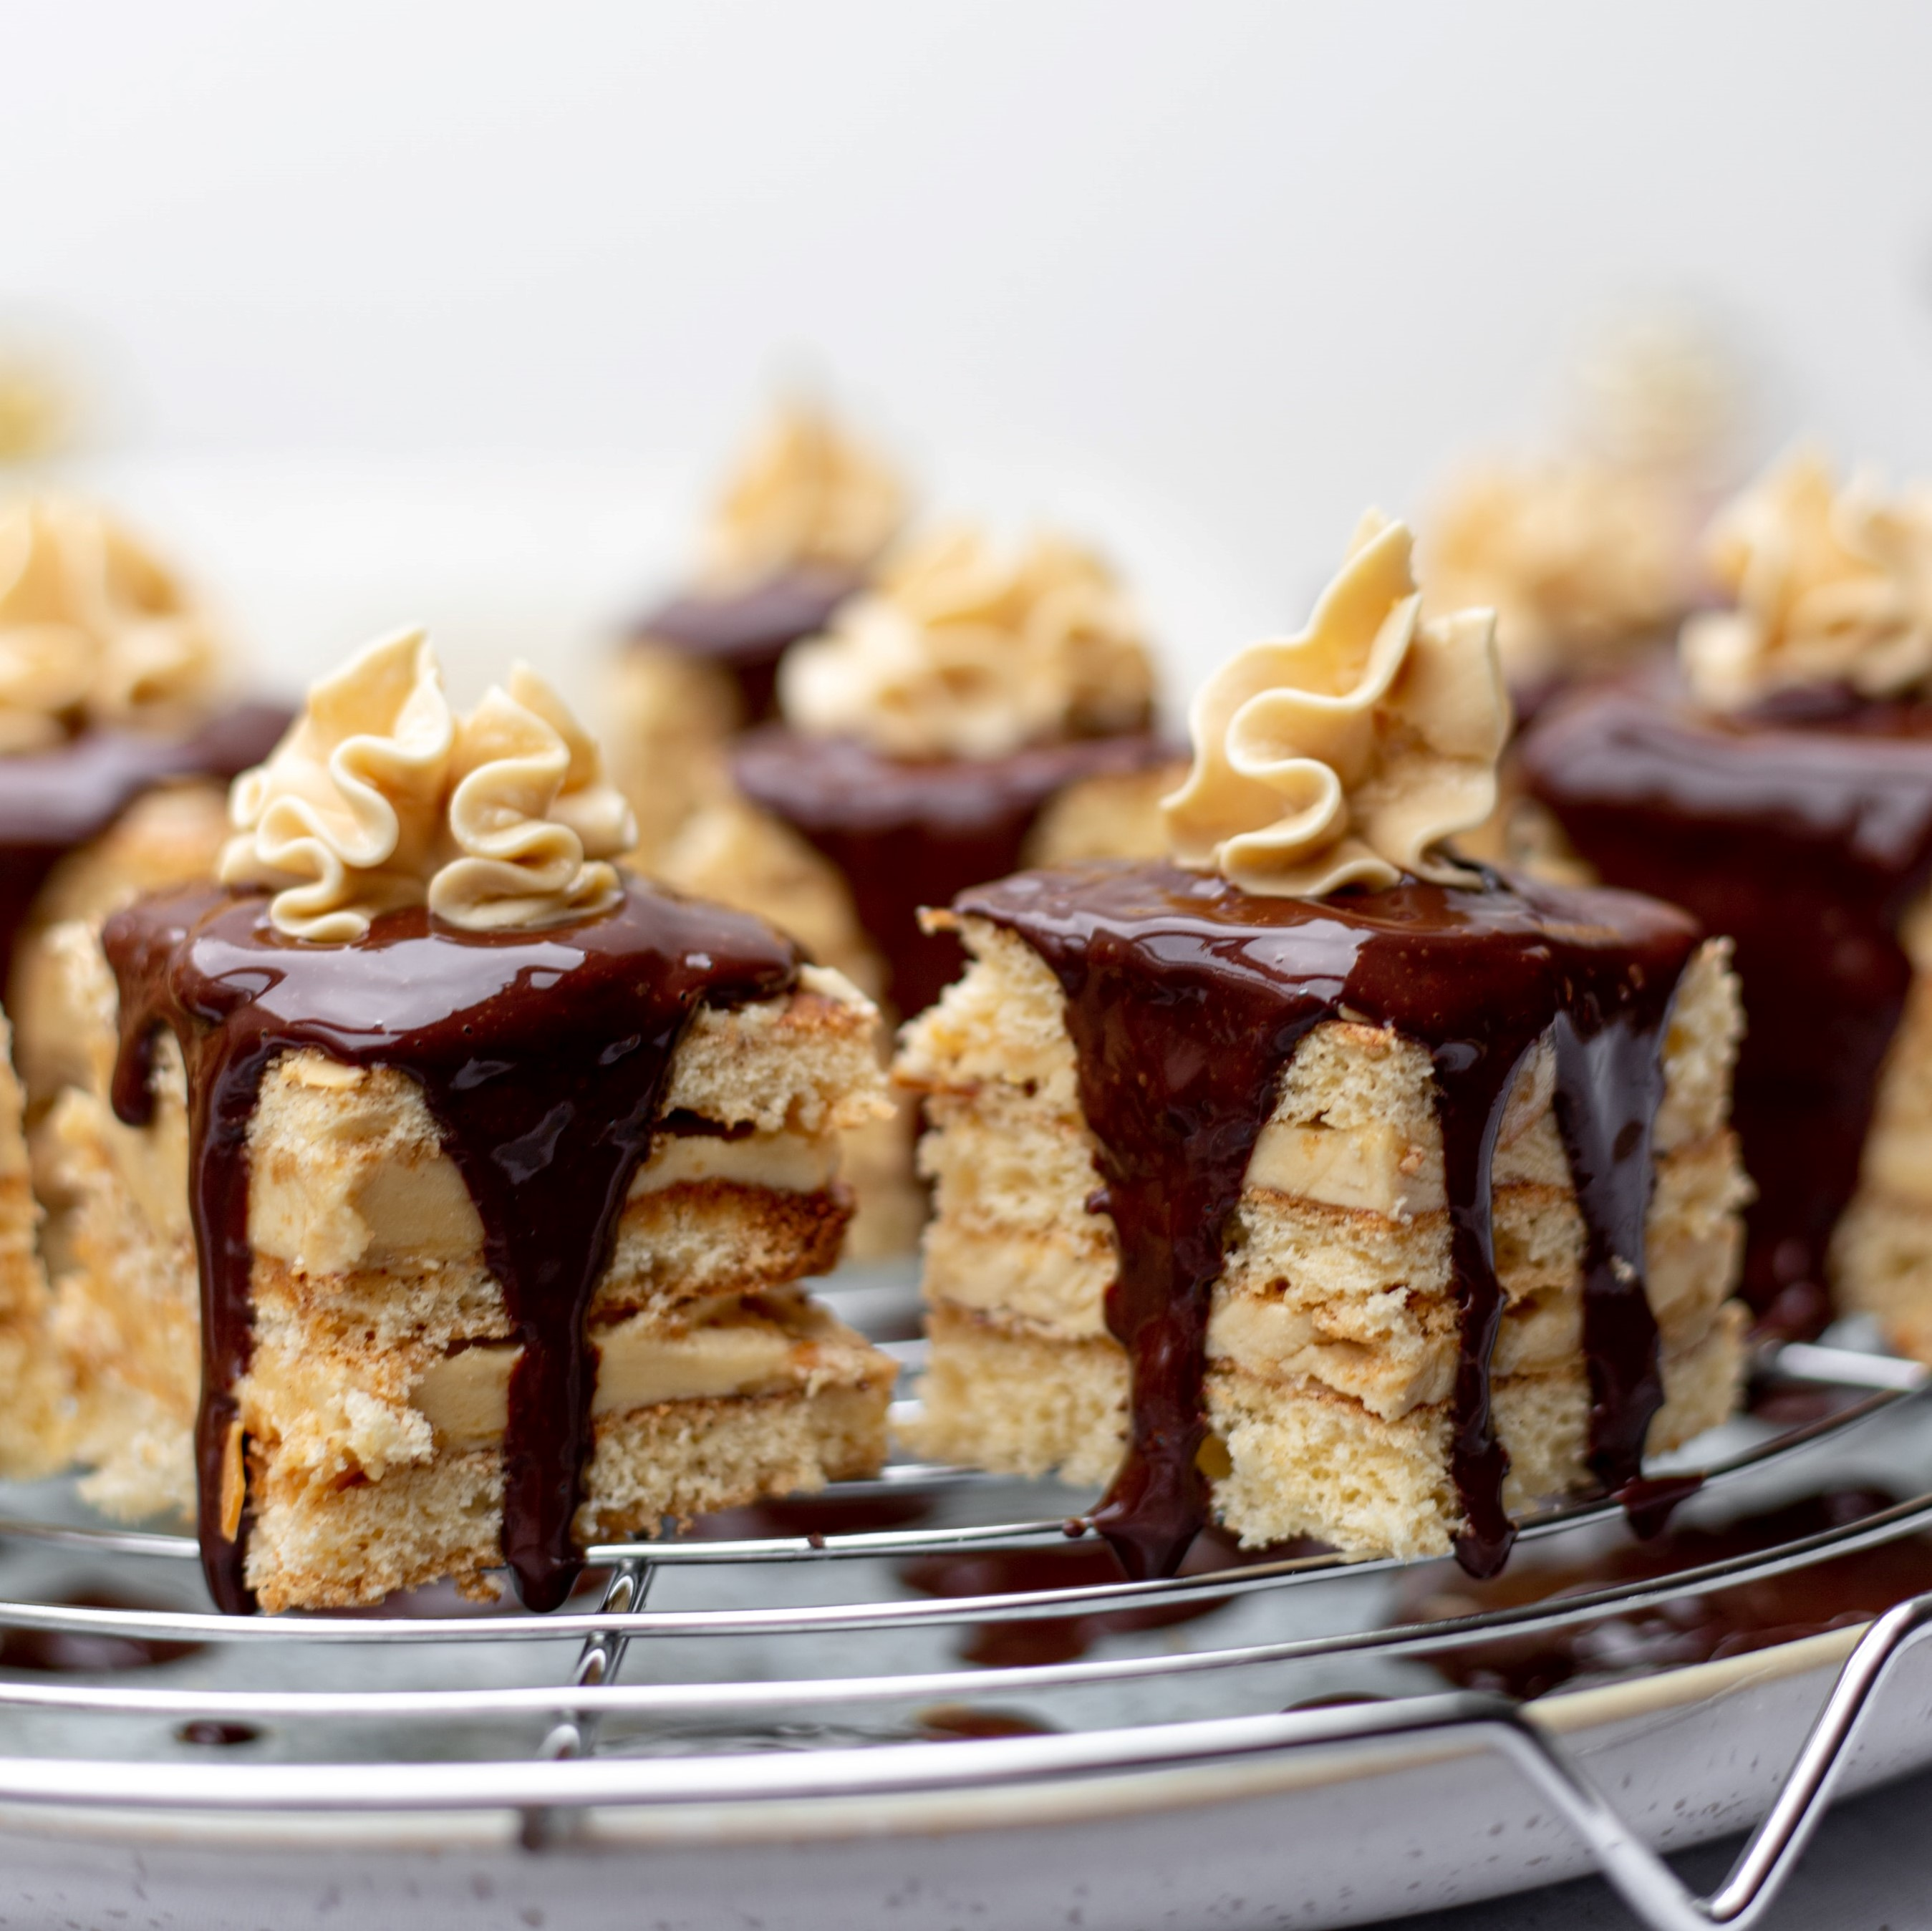 What is the difference between ganache and buttercream?